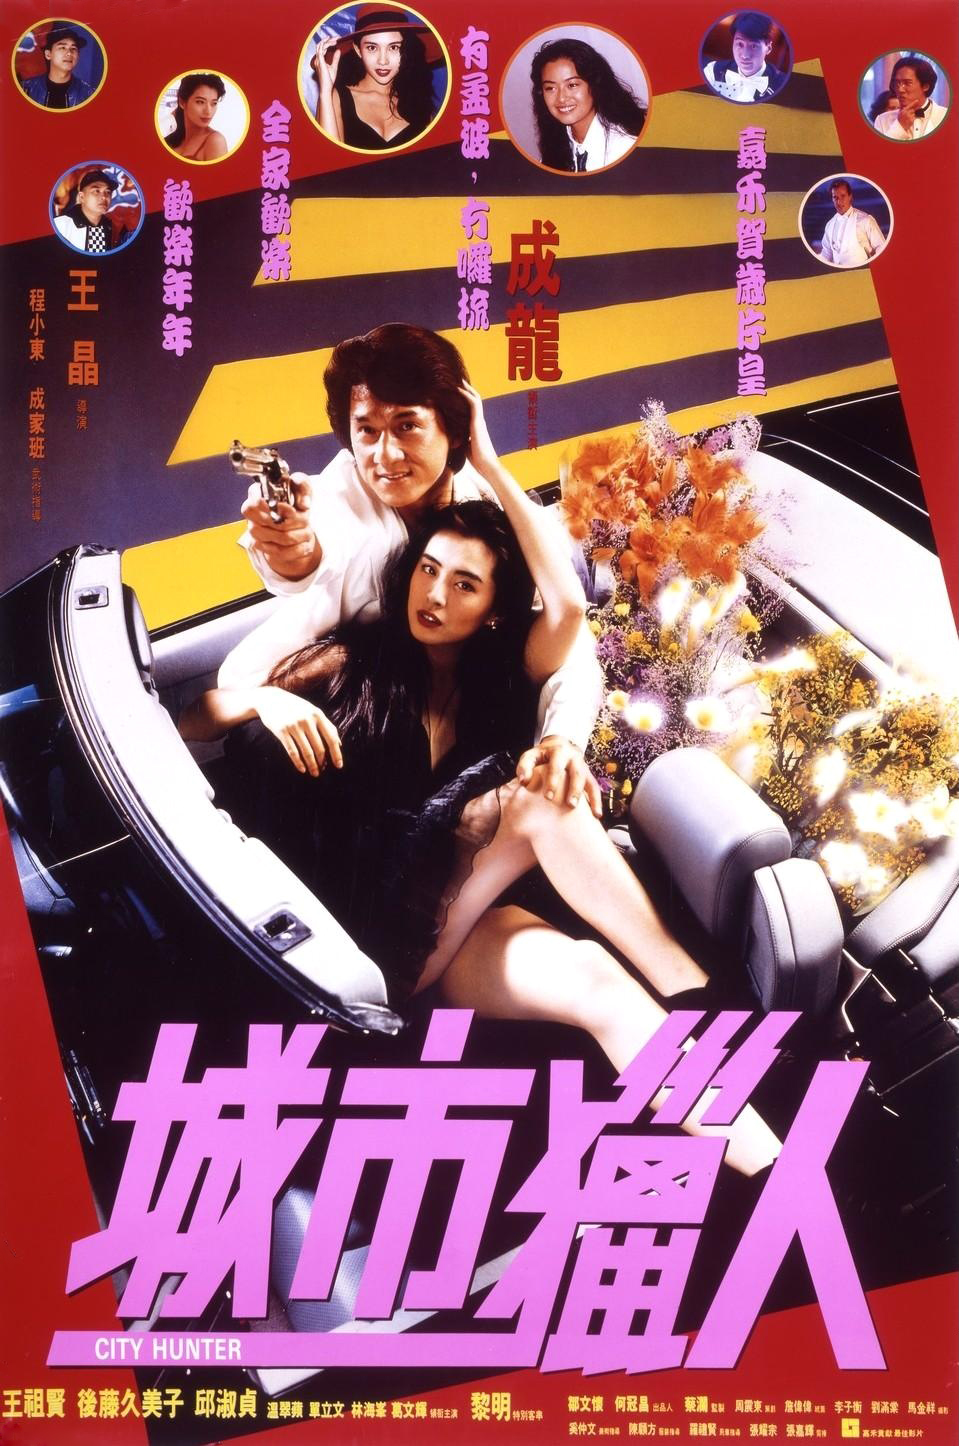 City Hunter (1992) Review | cityonfire.com